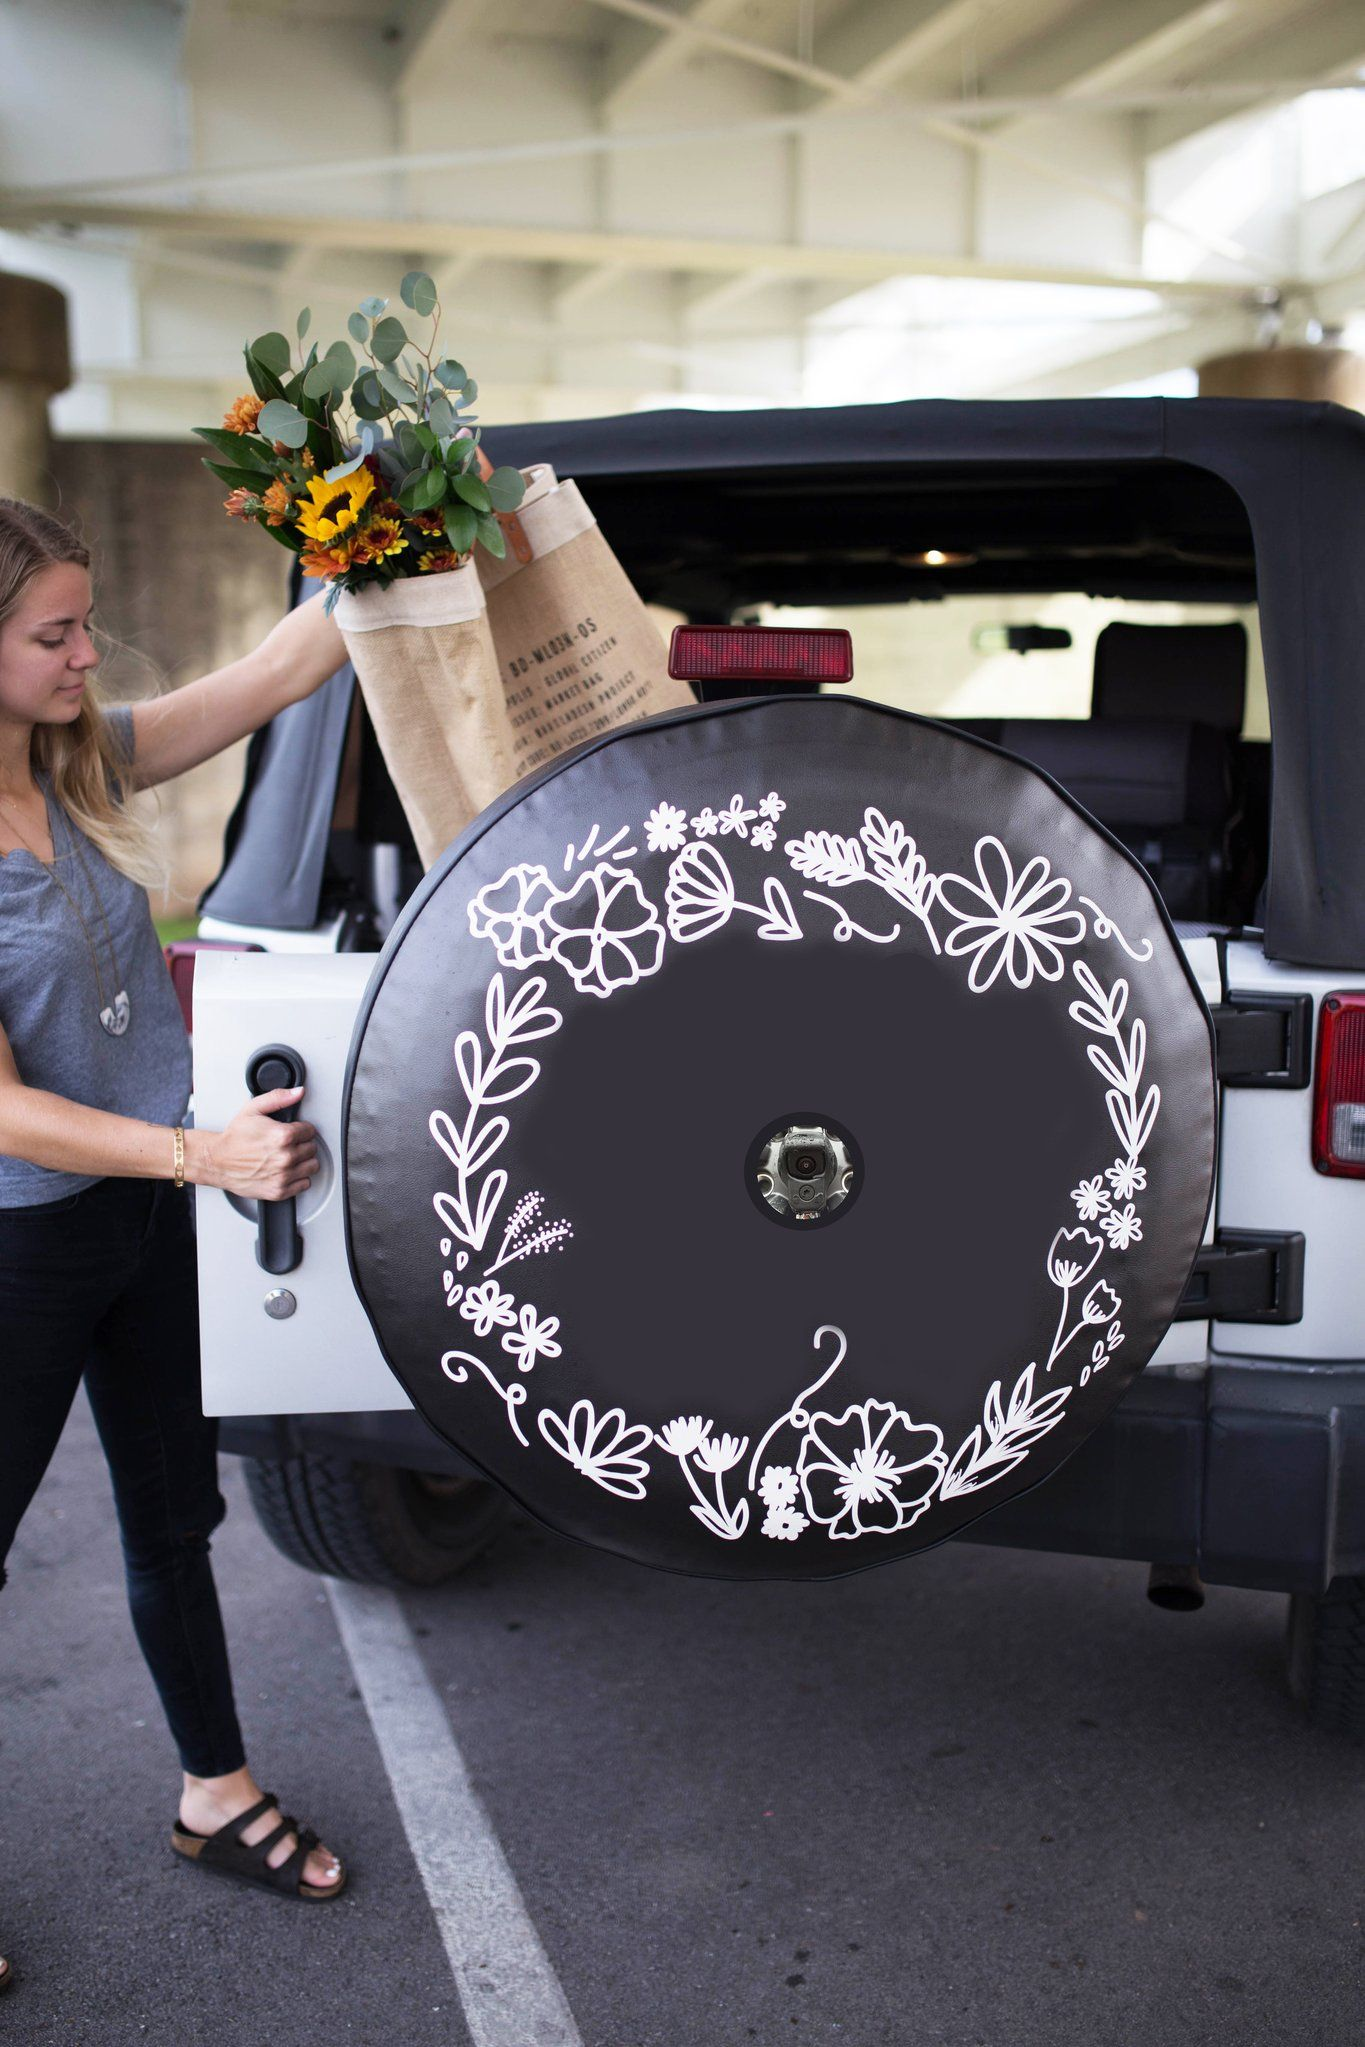 Jl Backup Camera Floral Wreath Jeep Tire Cover Tire Cover